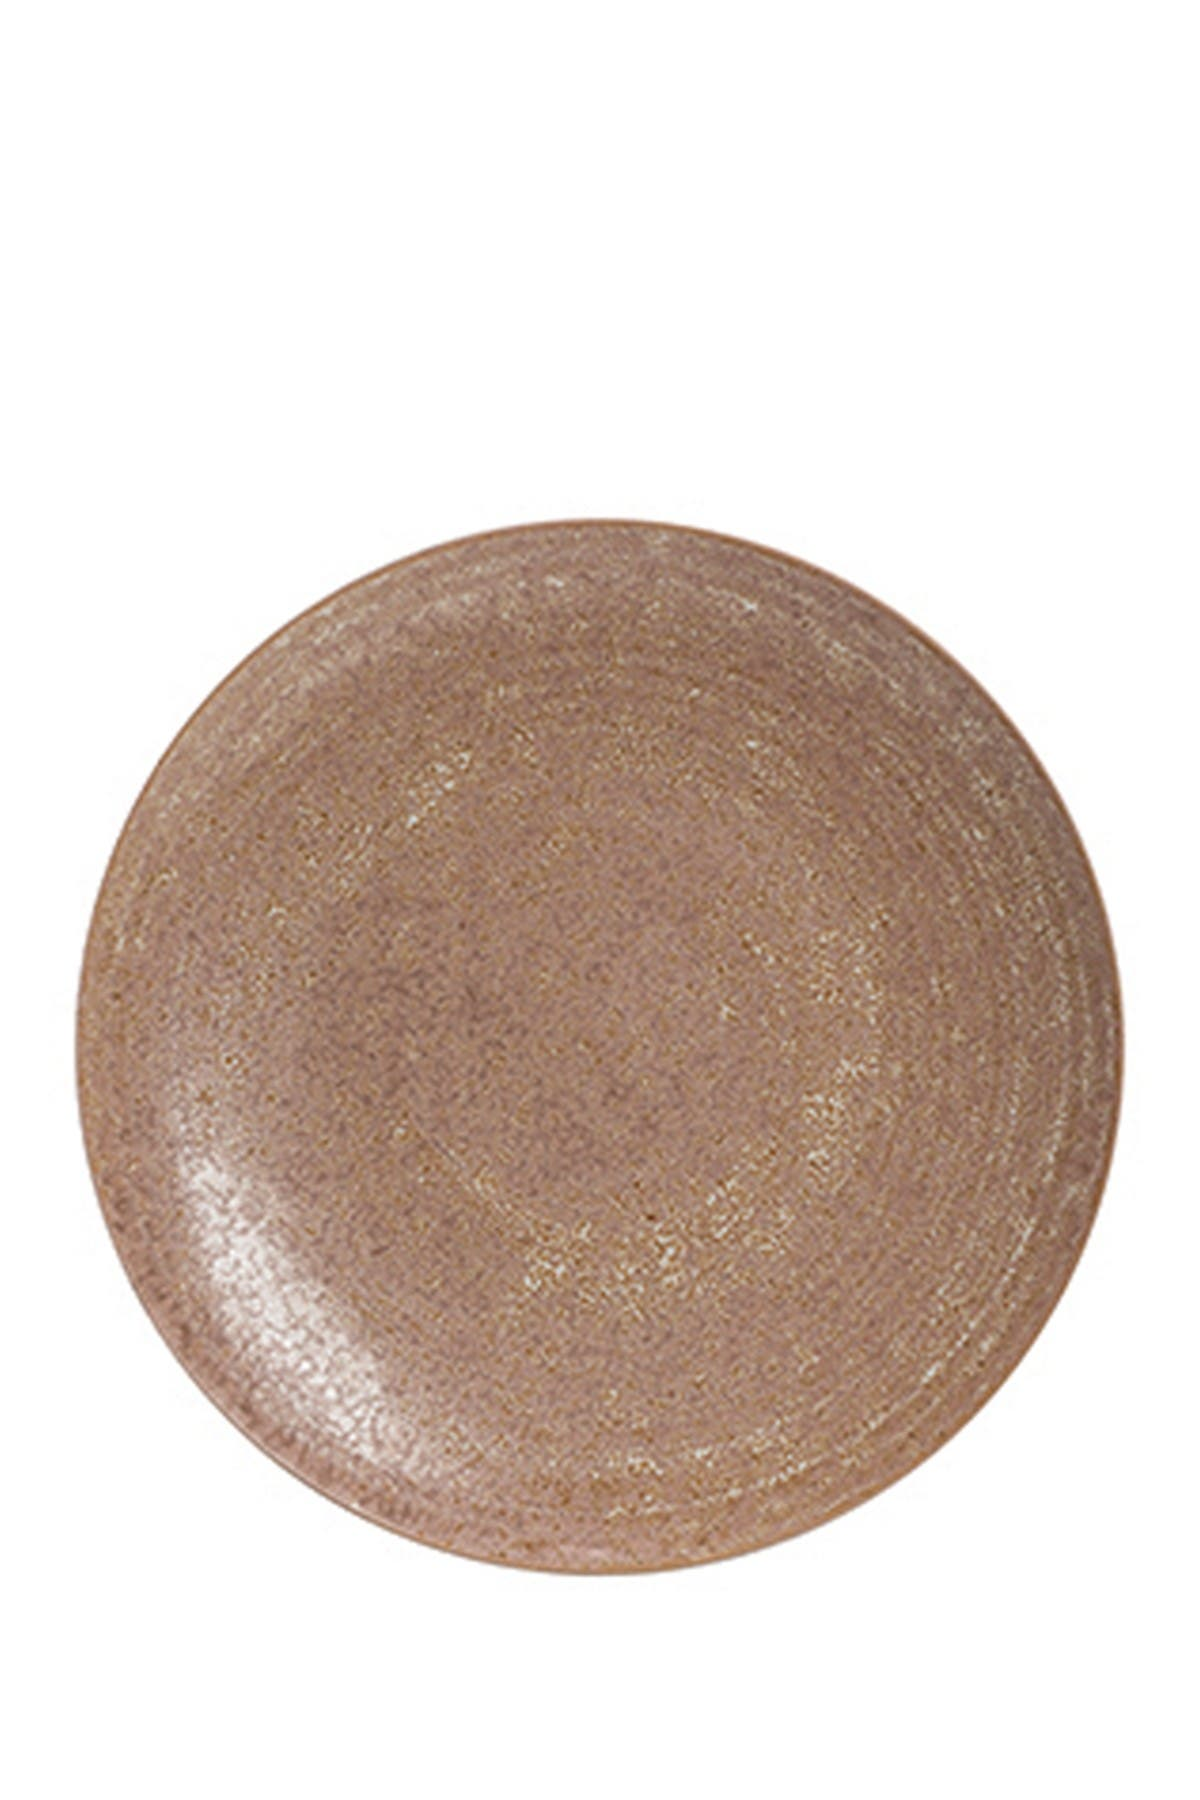 Image of Creative Co-op Putty Reactive Glaze Stoneware Plate